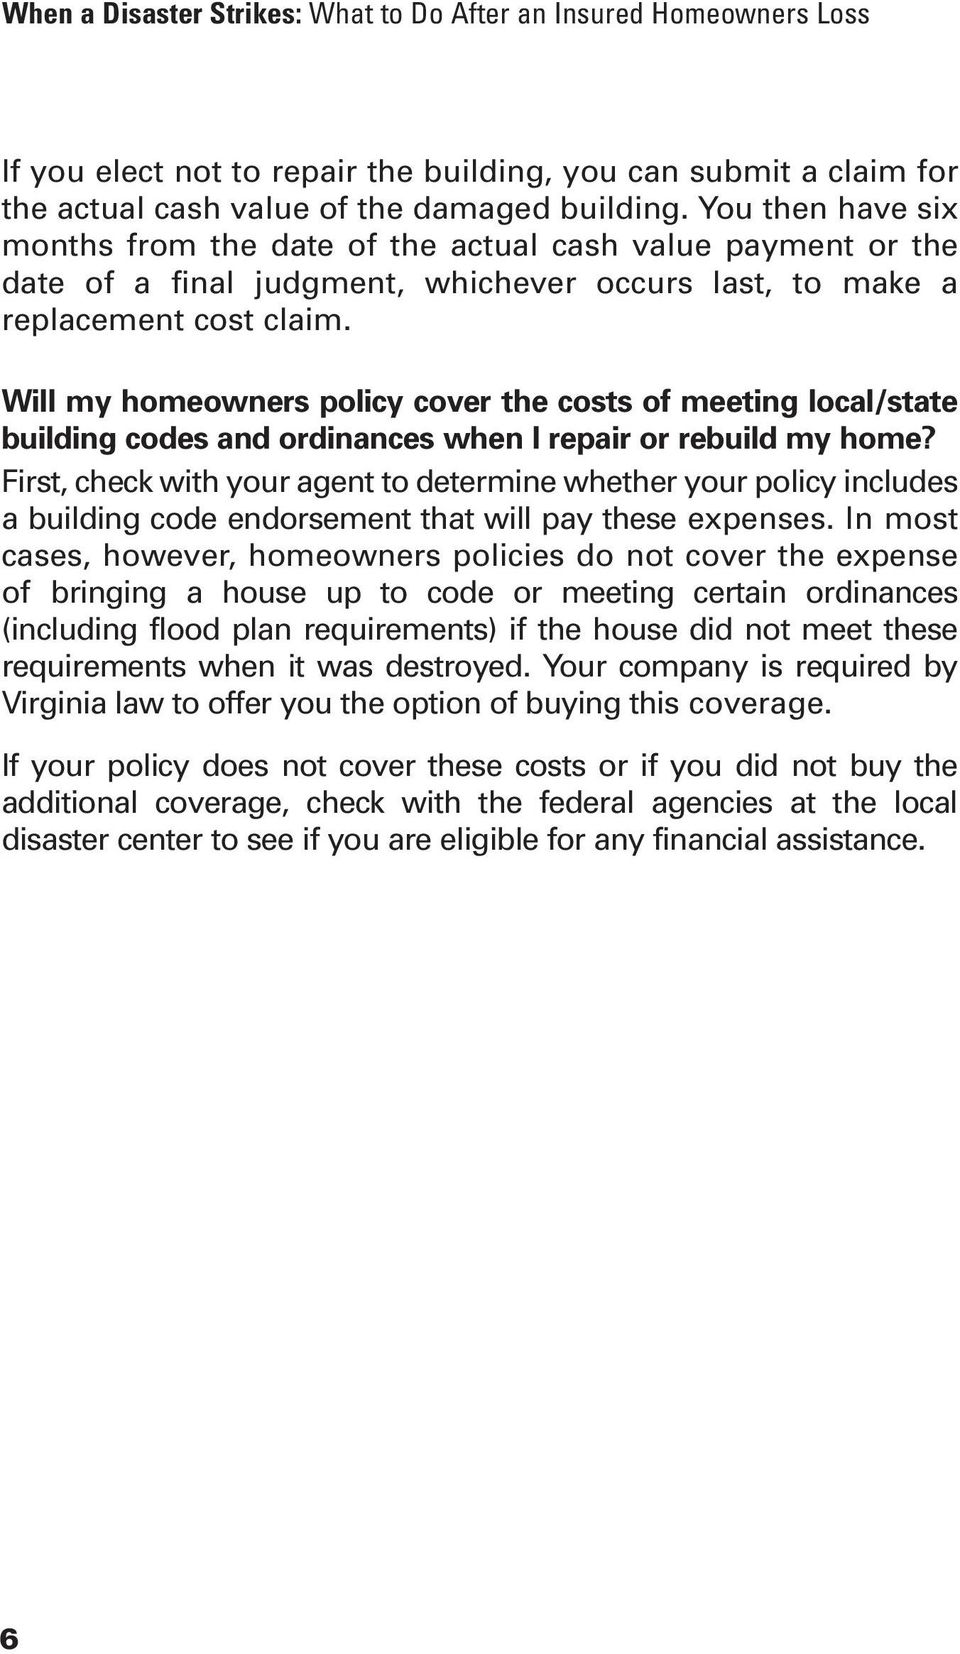 Will my homeowners policy cover the costs of meeting local/state building codes and ordinances when I repair or rebuild my home?